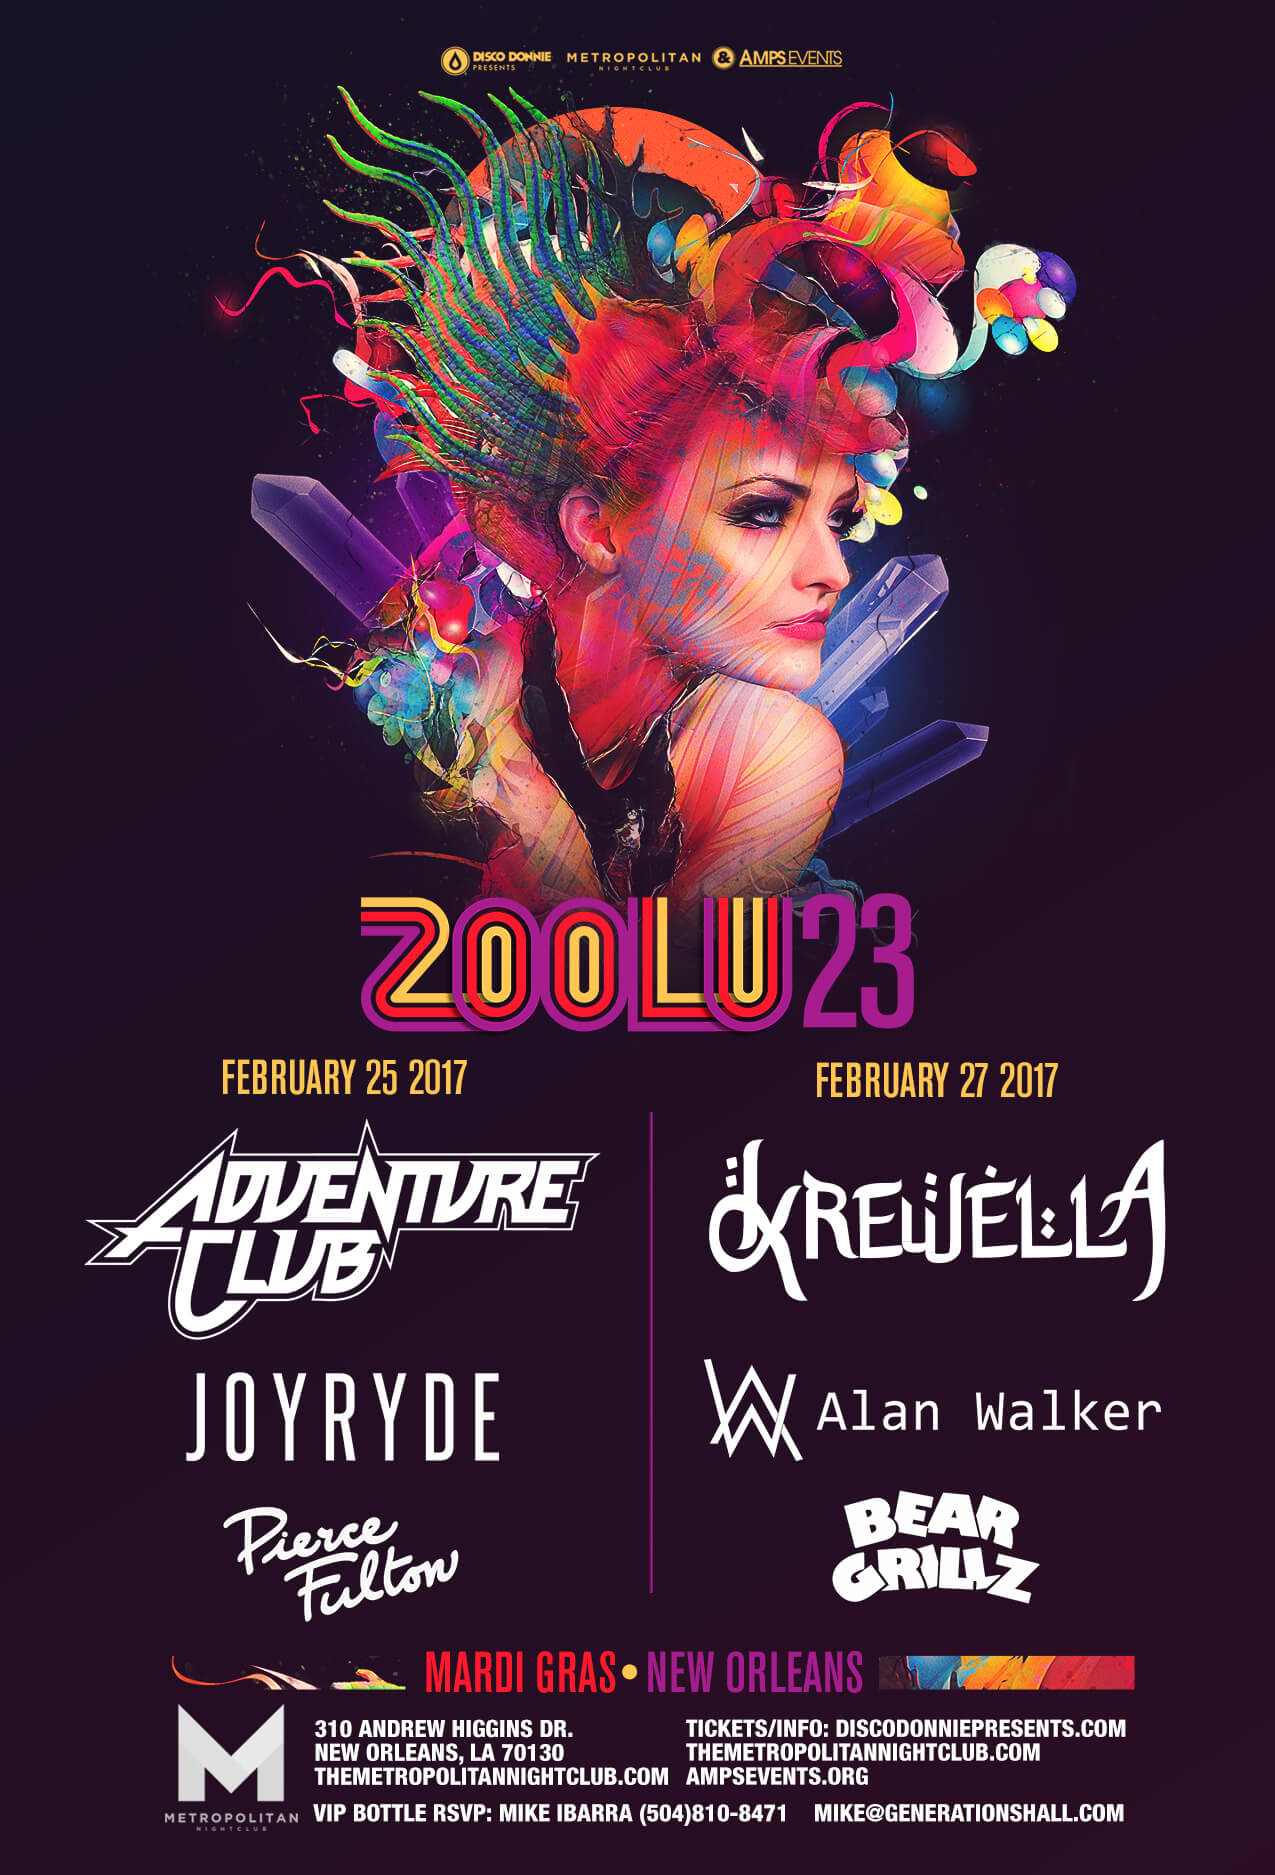 Zoolu 23 is Coming to The Metropolitan Nightclub in New Orleans!